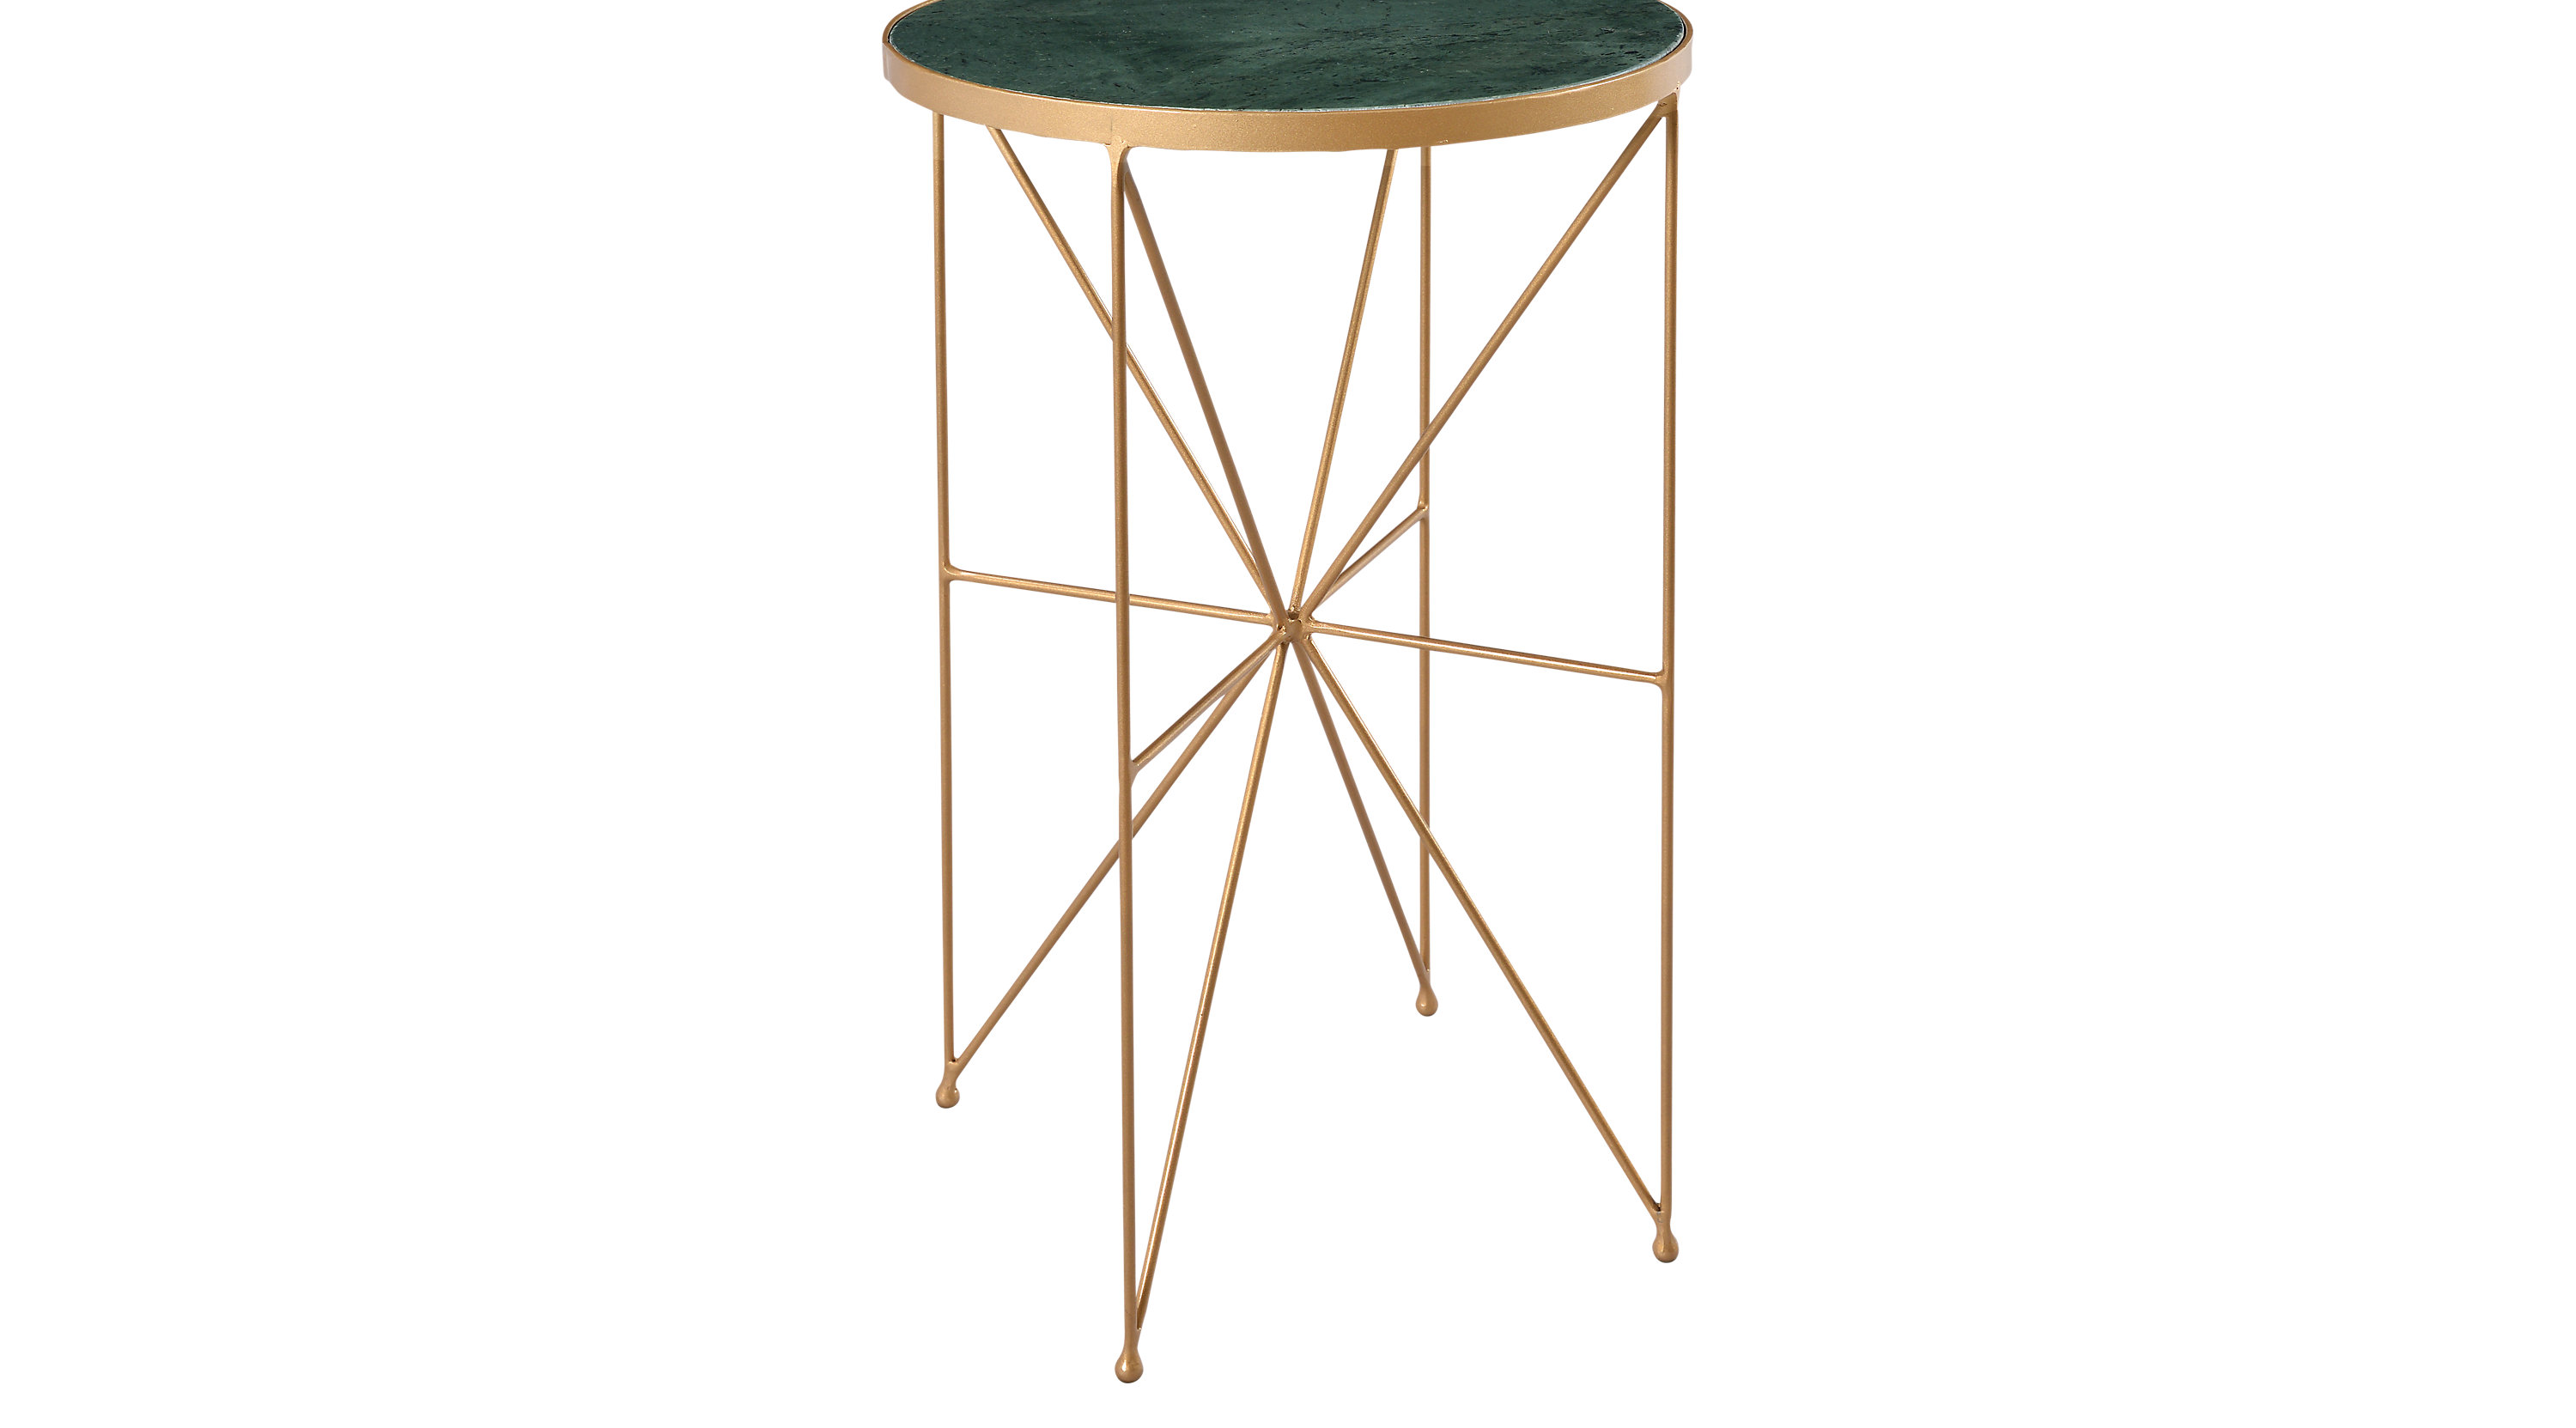 kimana gold accent table end round mirrored coffee outdoor shoe storage study lamp nesting glass with power reception desk garden stool side nic pineapple cutter low chrome small